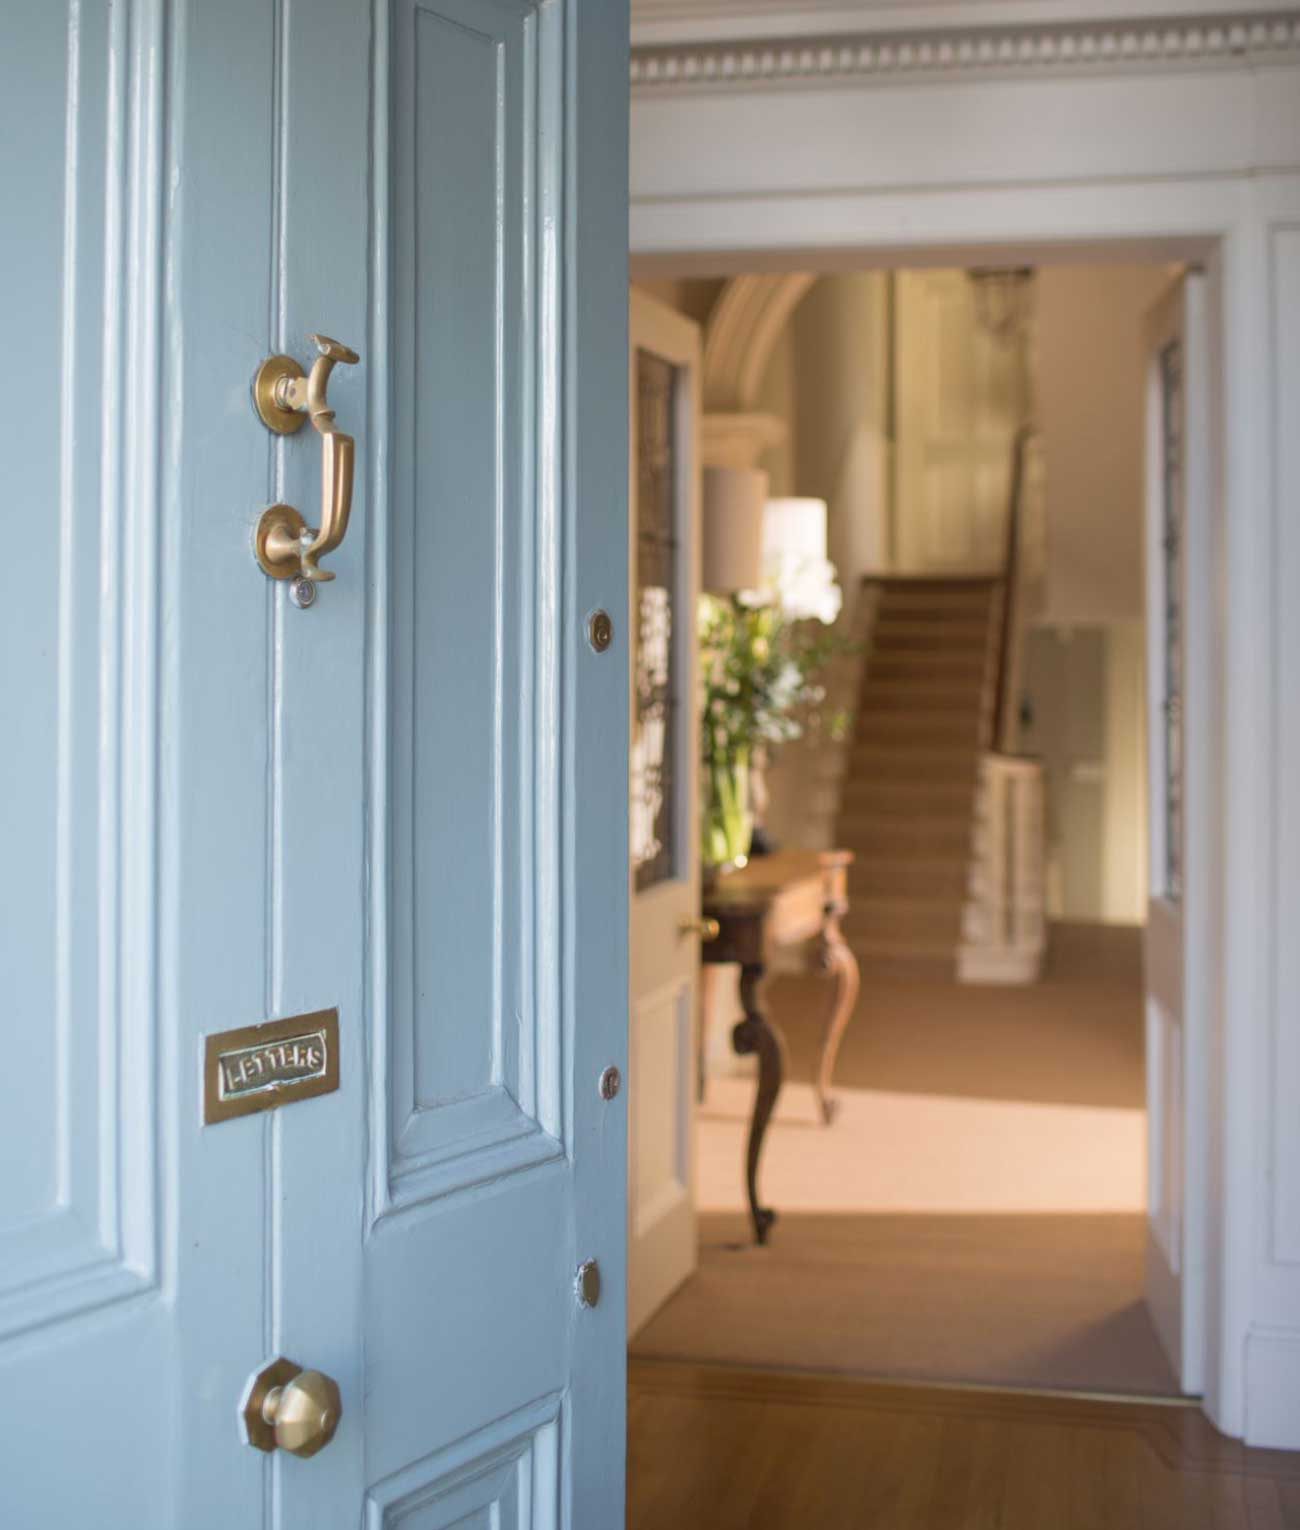 Thompson Clarke Interiors - Townhouse Project Image 1